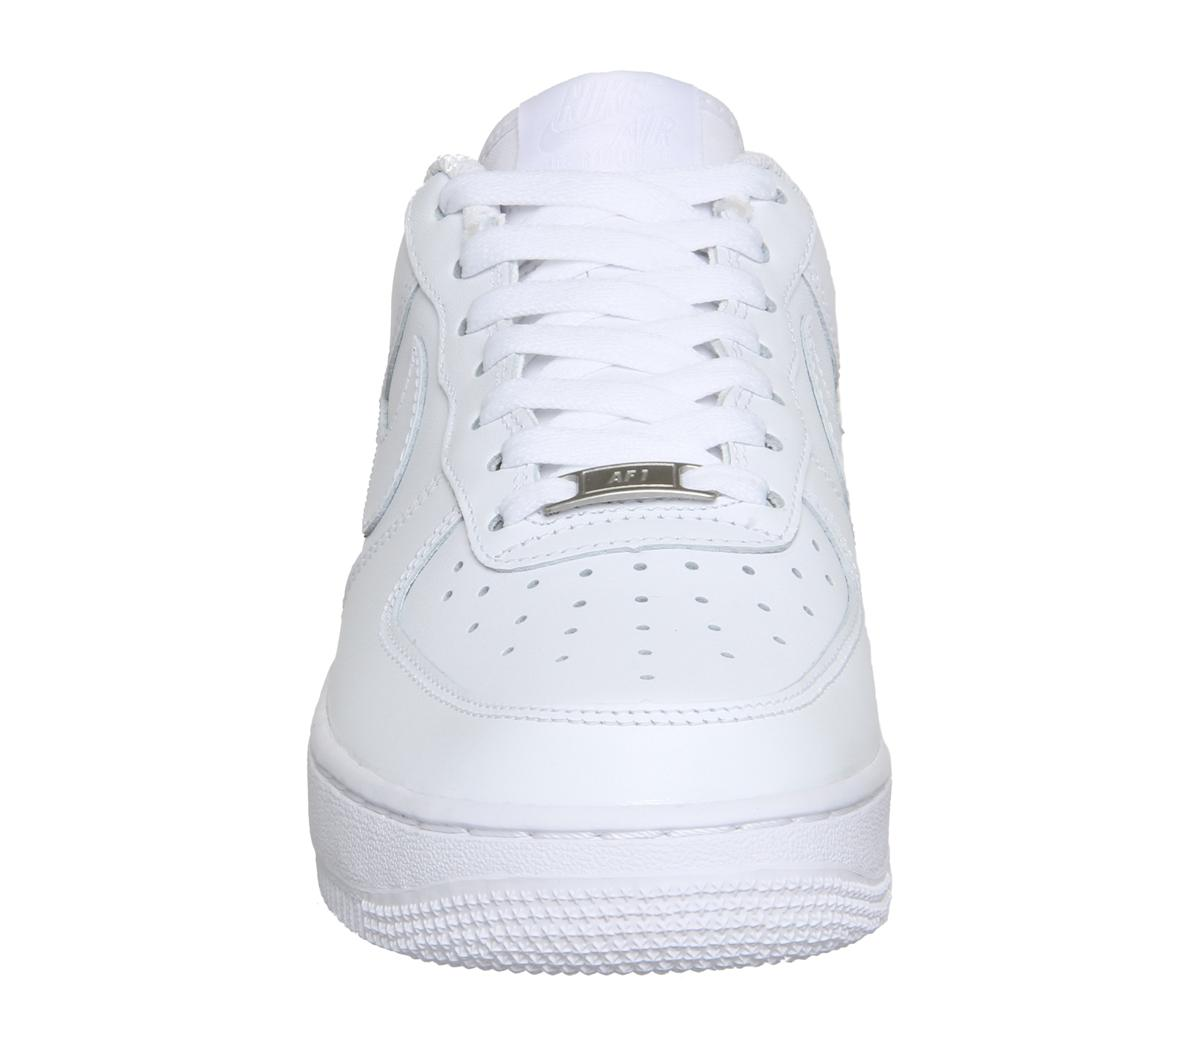 sale retailer 36c14 4ec7e Lyst - Nike Air Force 1 Leather Sneakers in White